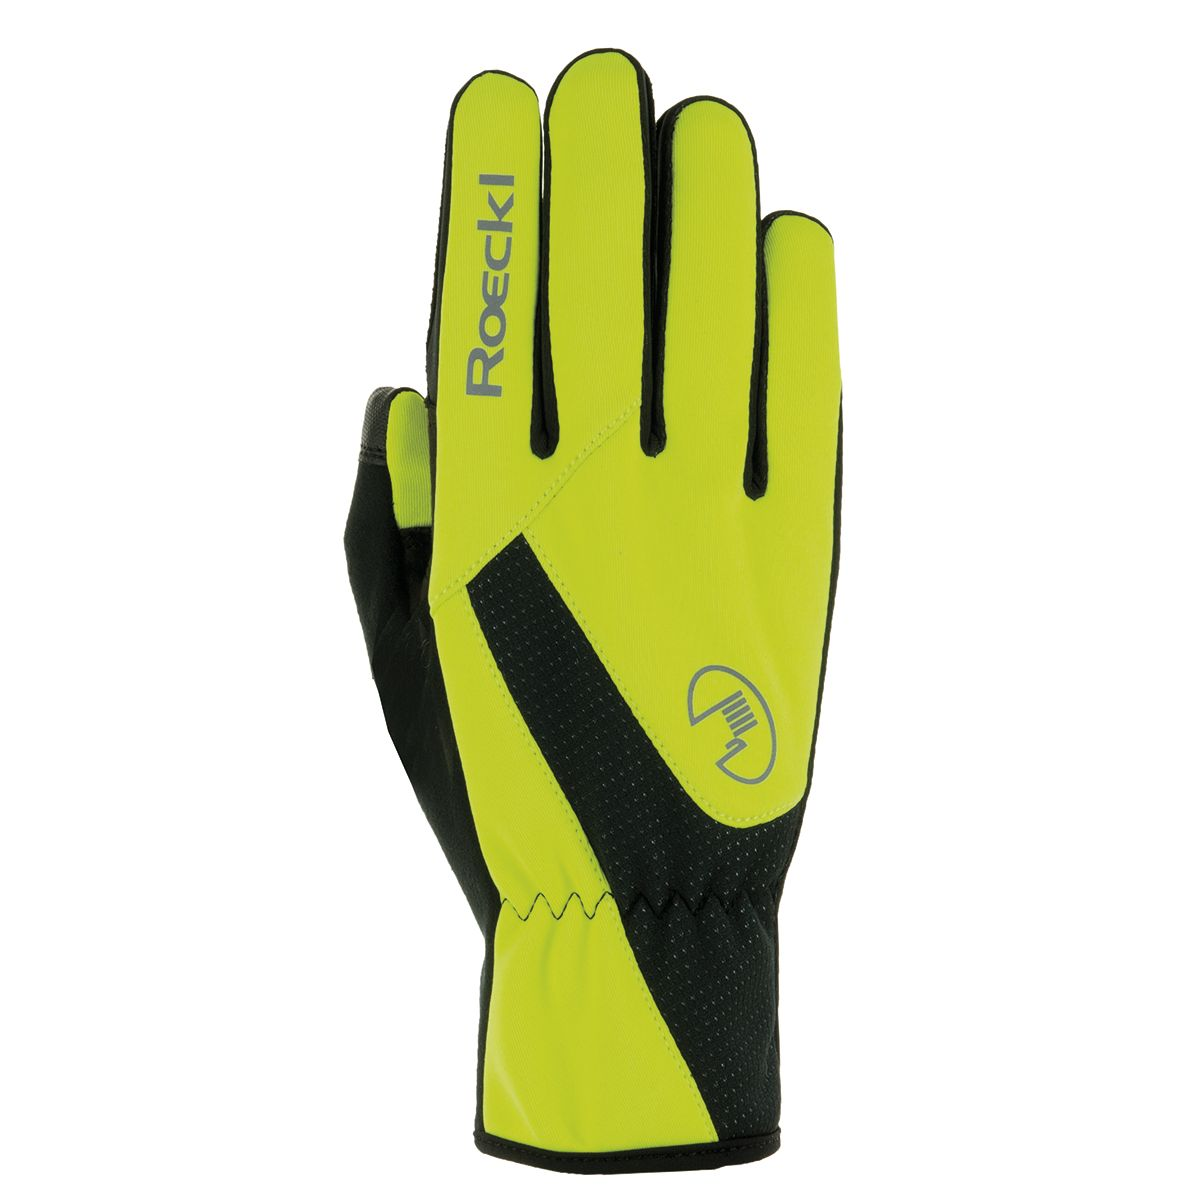 ROECKL ROTH winter cycling gloves | Handsker